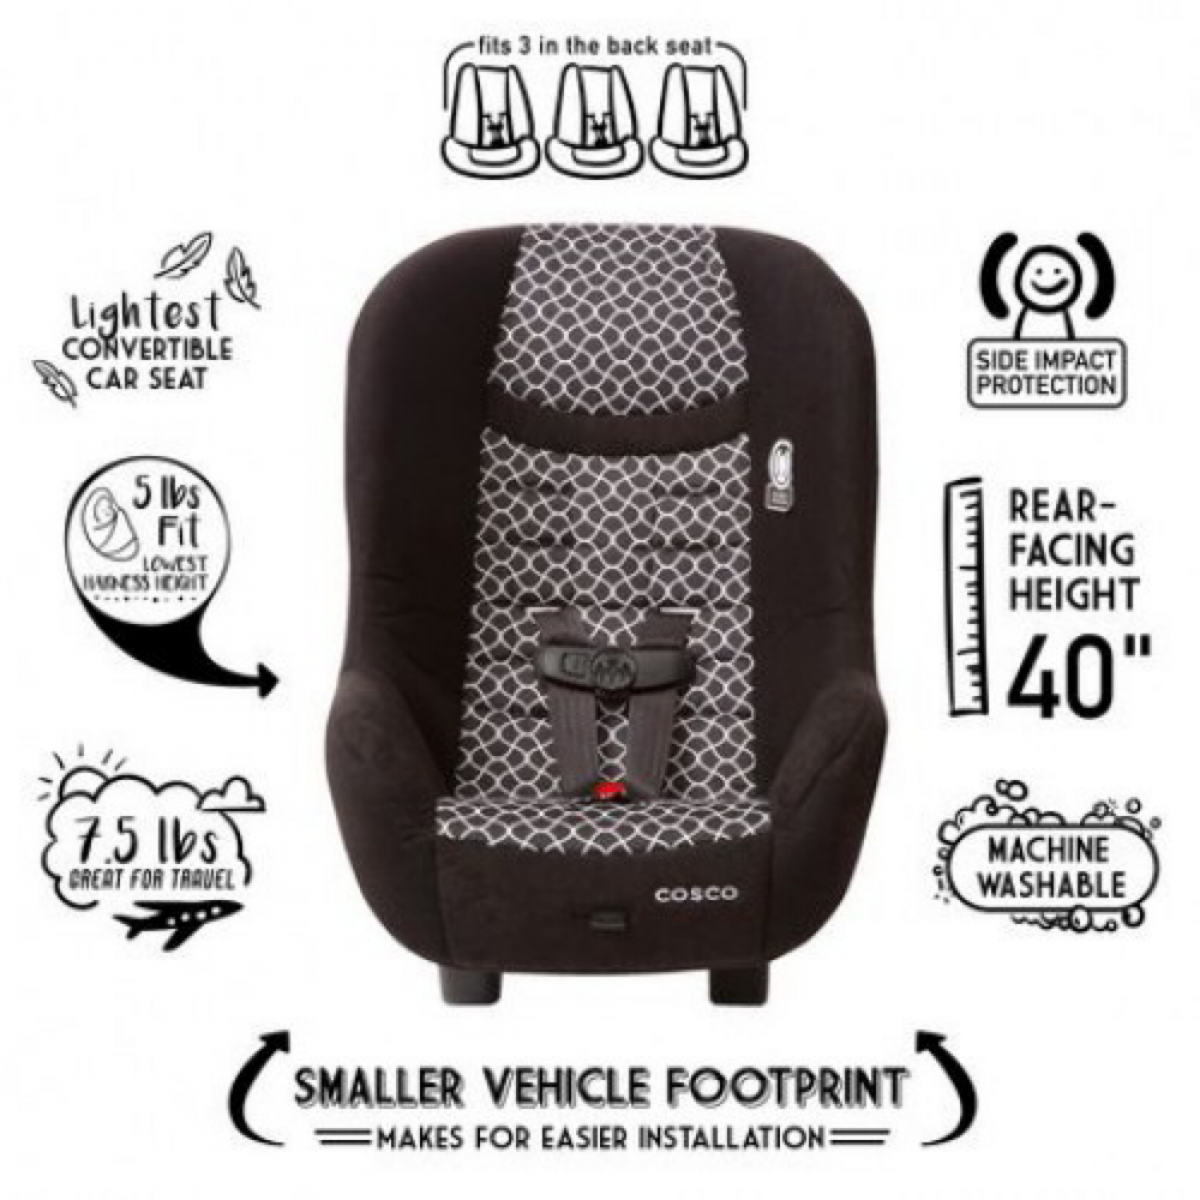 Cosco Scenera NEXT Convertible (3 Seat in a row & Extended Rear Facing)  Car Seat - Otto